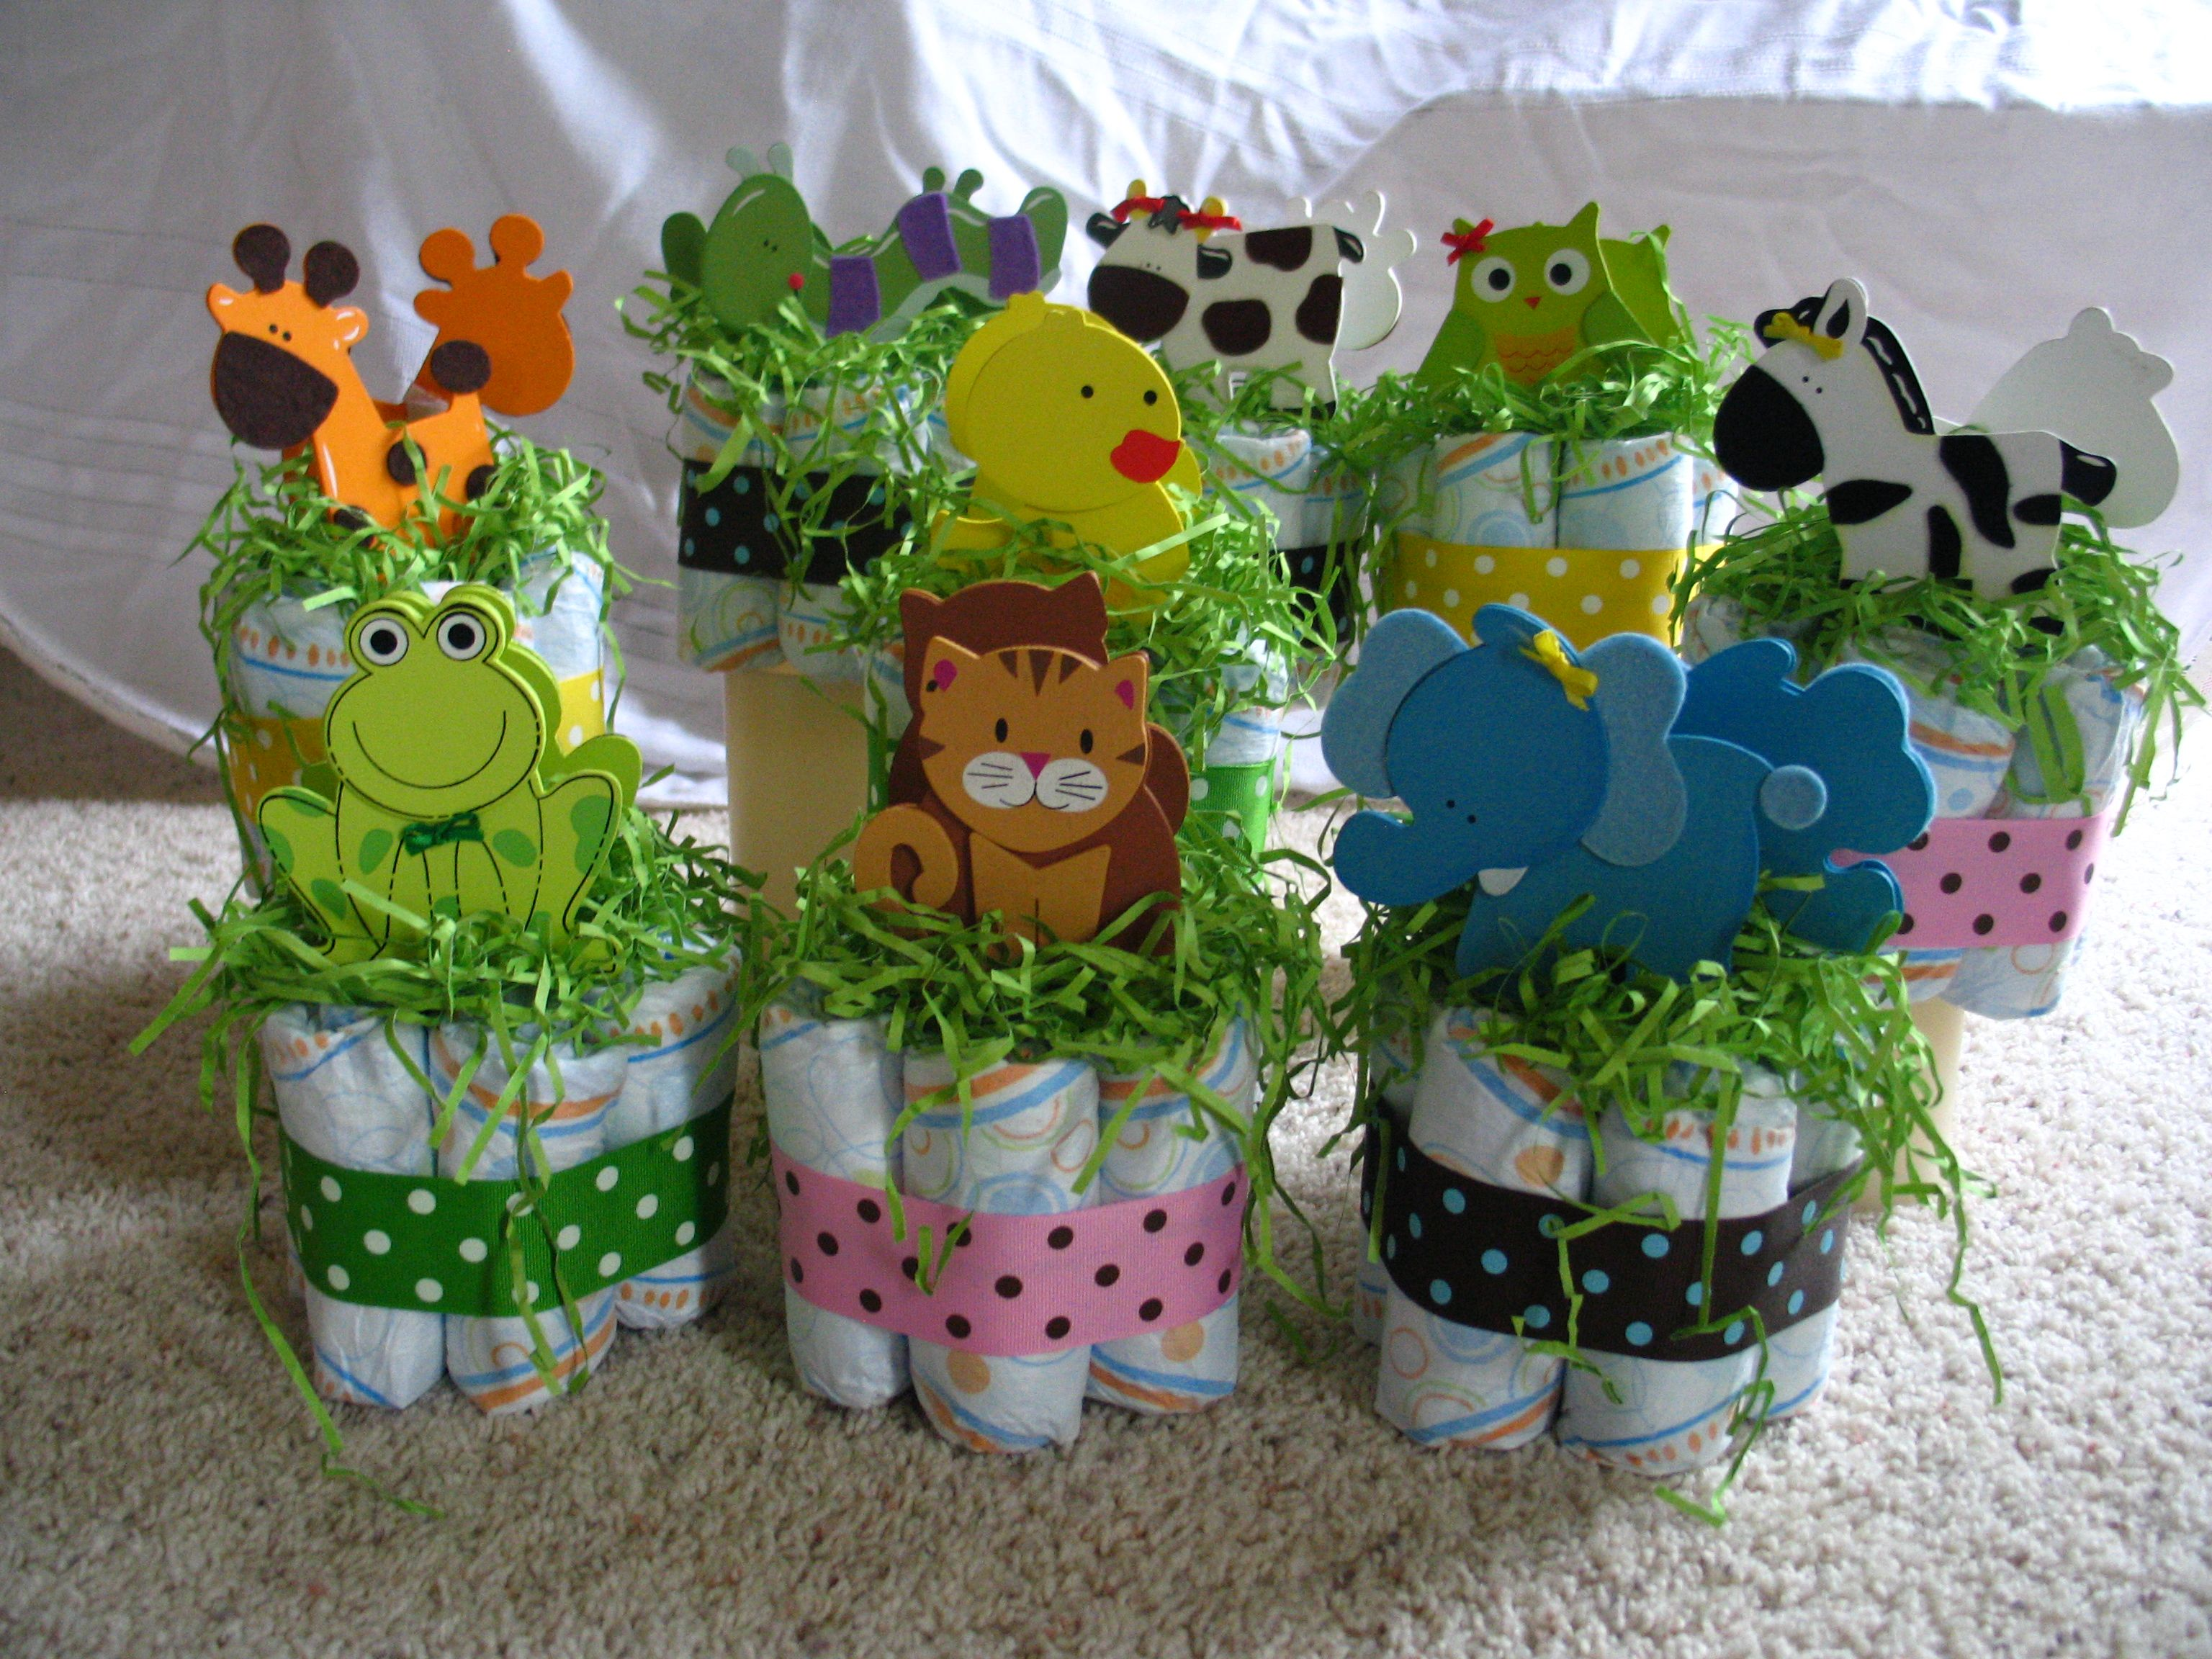 For twin Baby shower centerpieces each animal set is a boy and